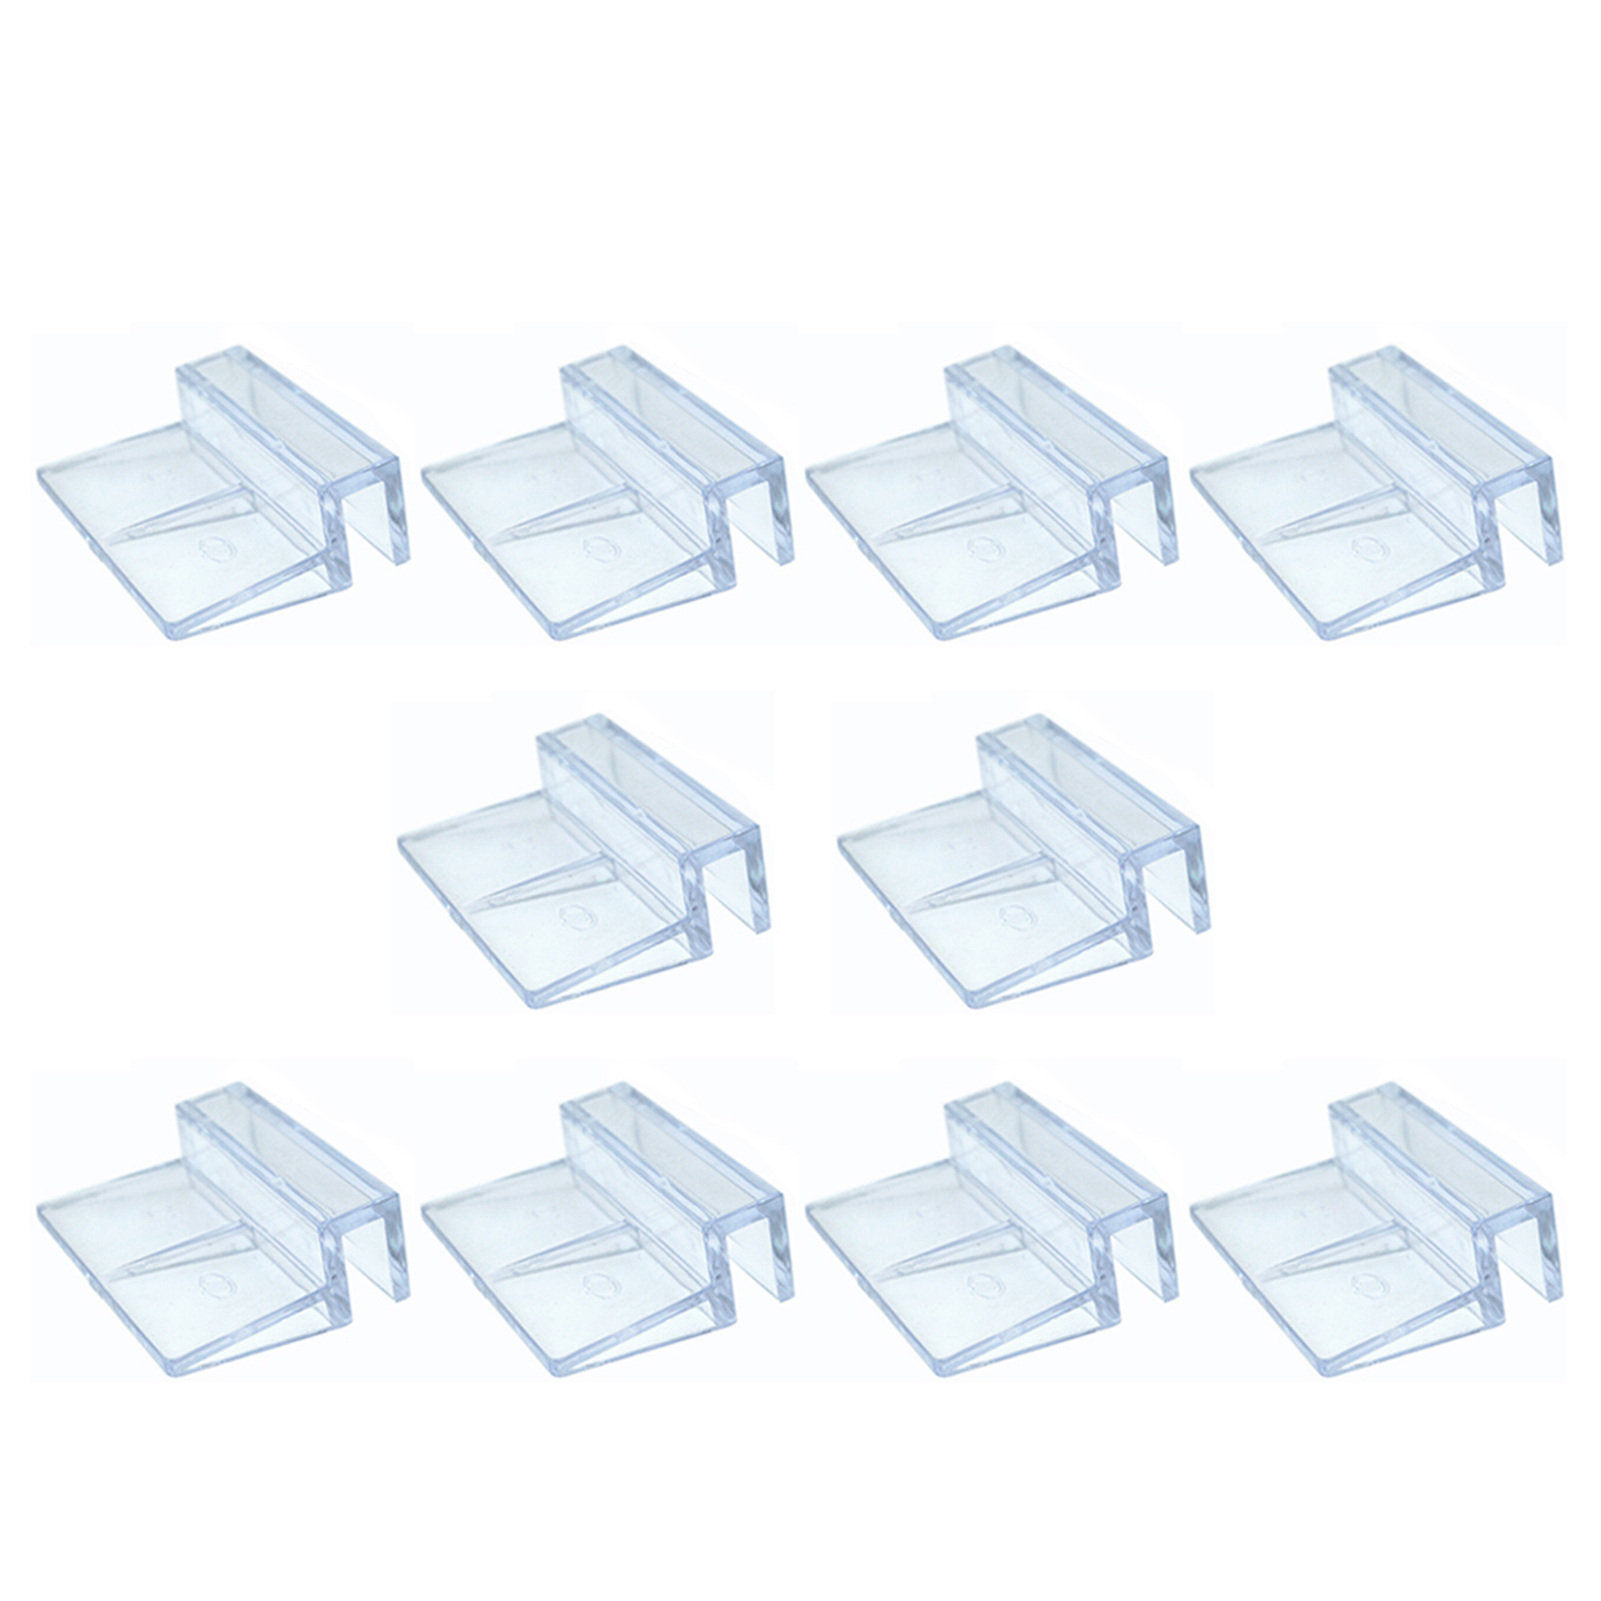 10pcs Pet Supplies Stand Home Support Holder Accessories Aquarium Clear 6/8/10/12mm Easy Install Glass Cover Clip Fish Tank